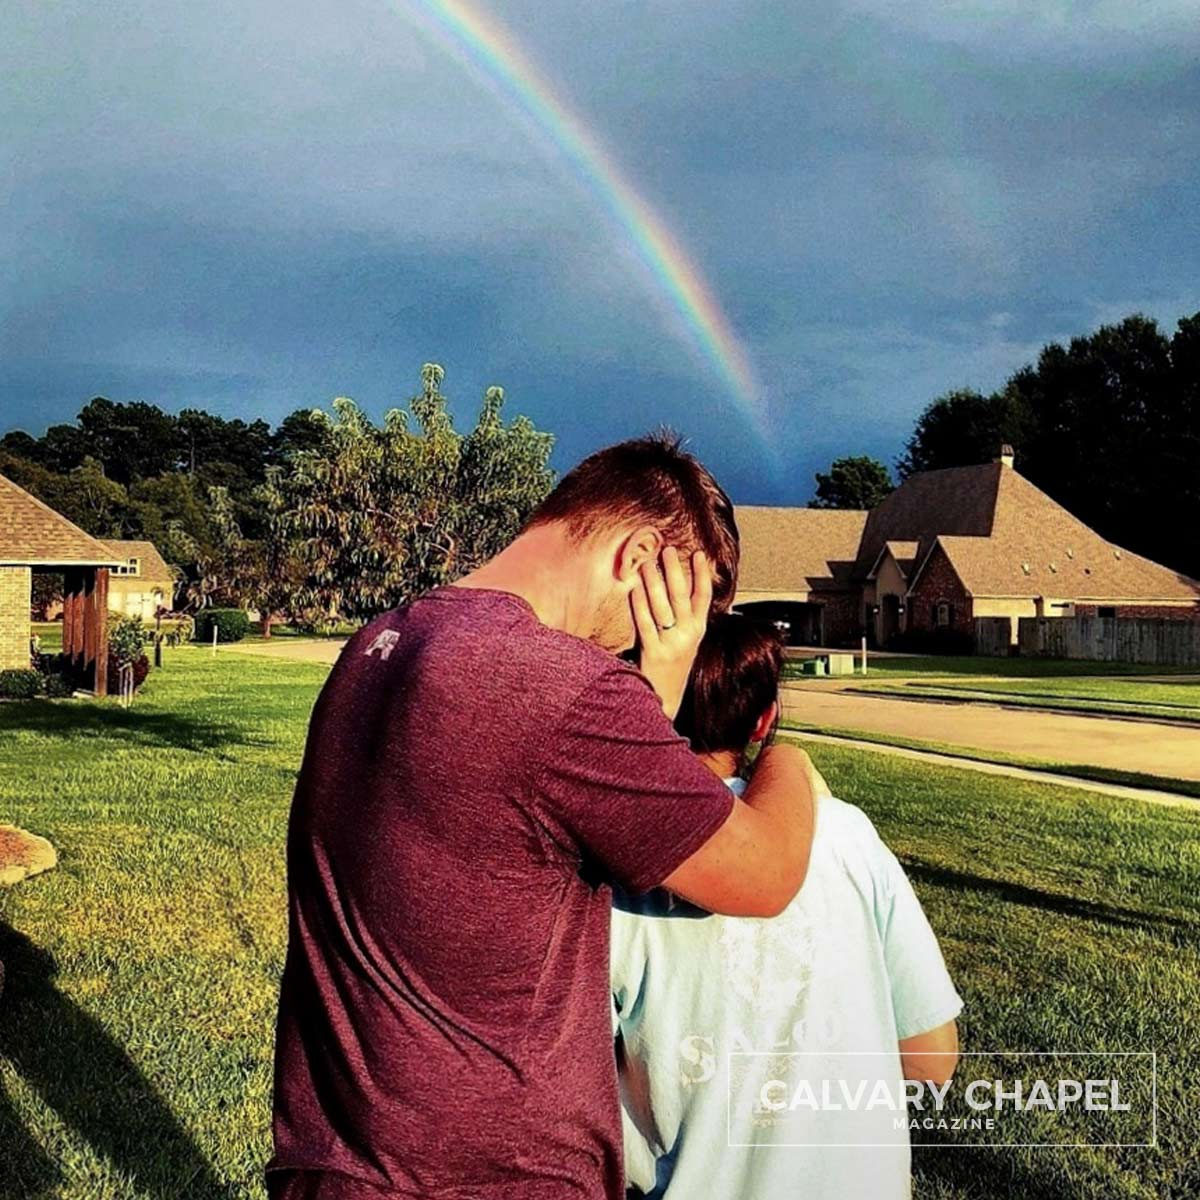 Man and woman hug under a rainbow